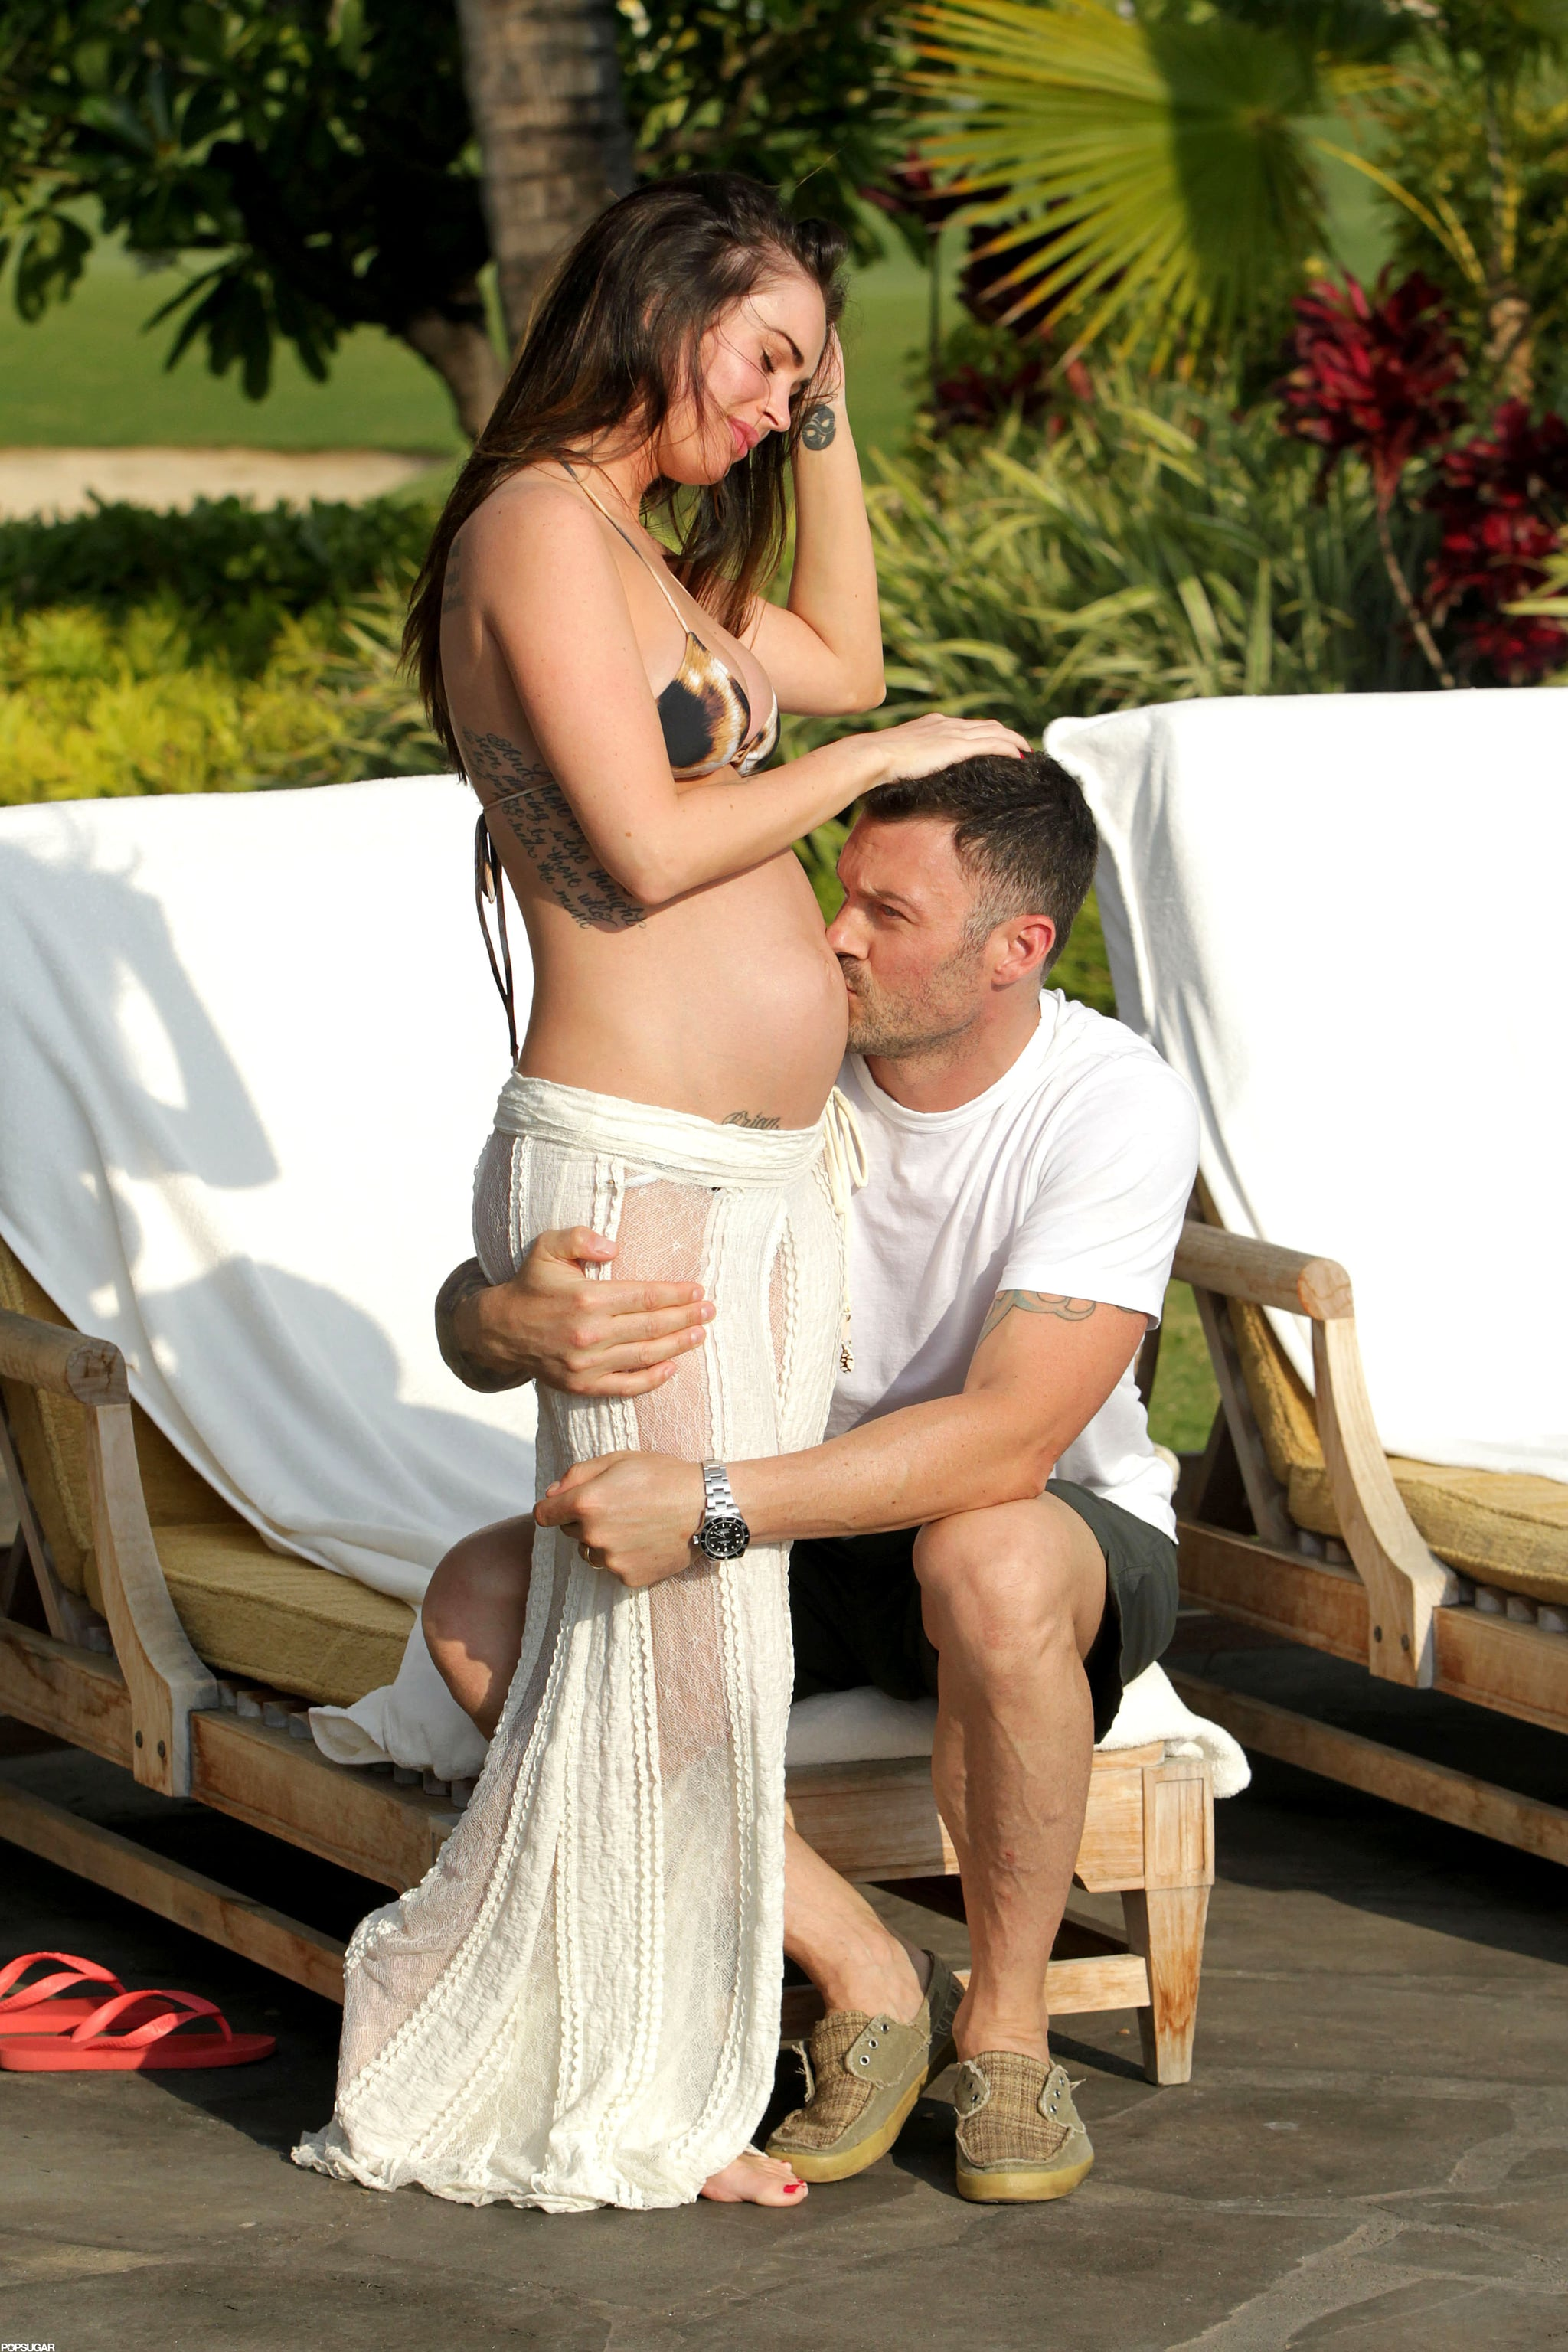 Brian kissed Megan's pregnant stomach during a vacation in Hawaii back in June 2012.